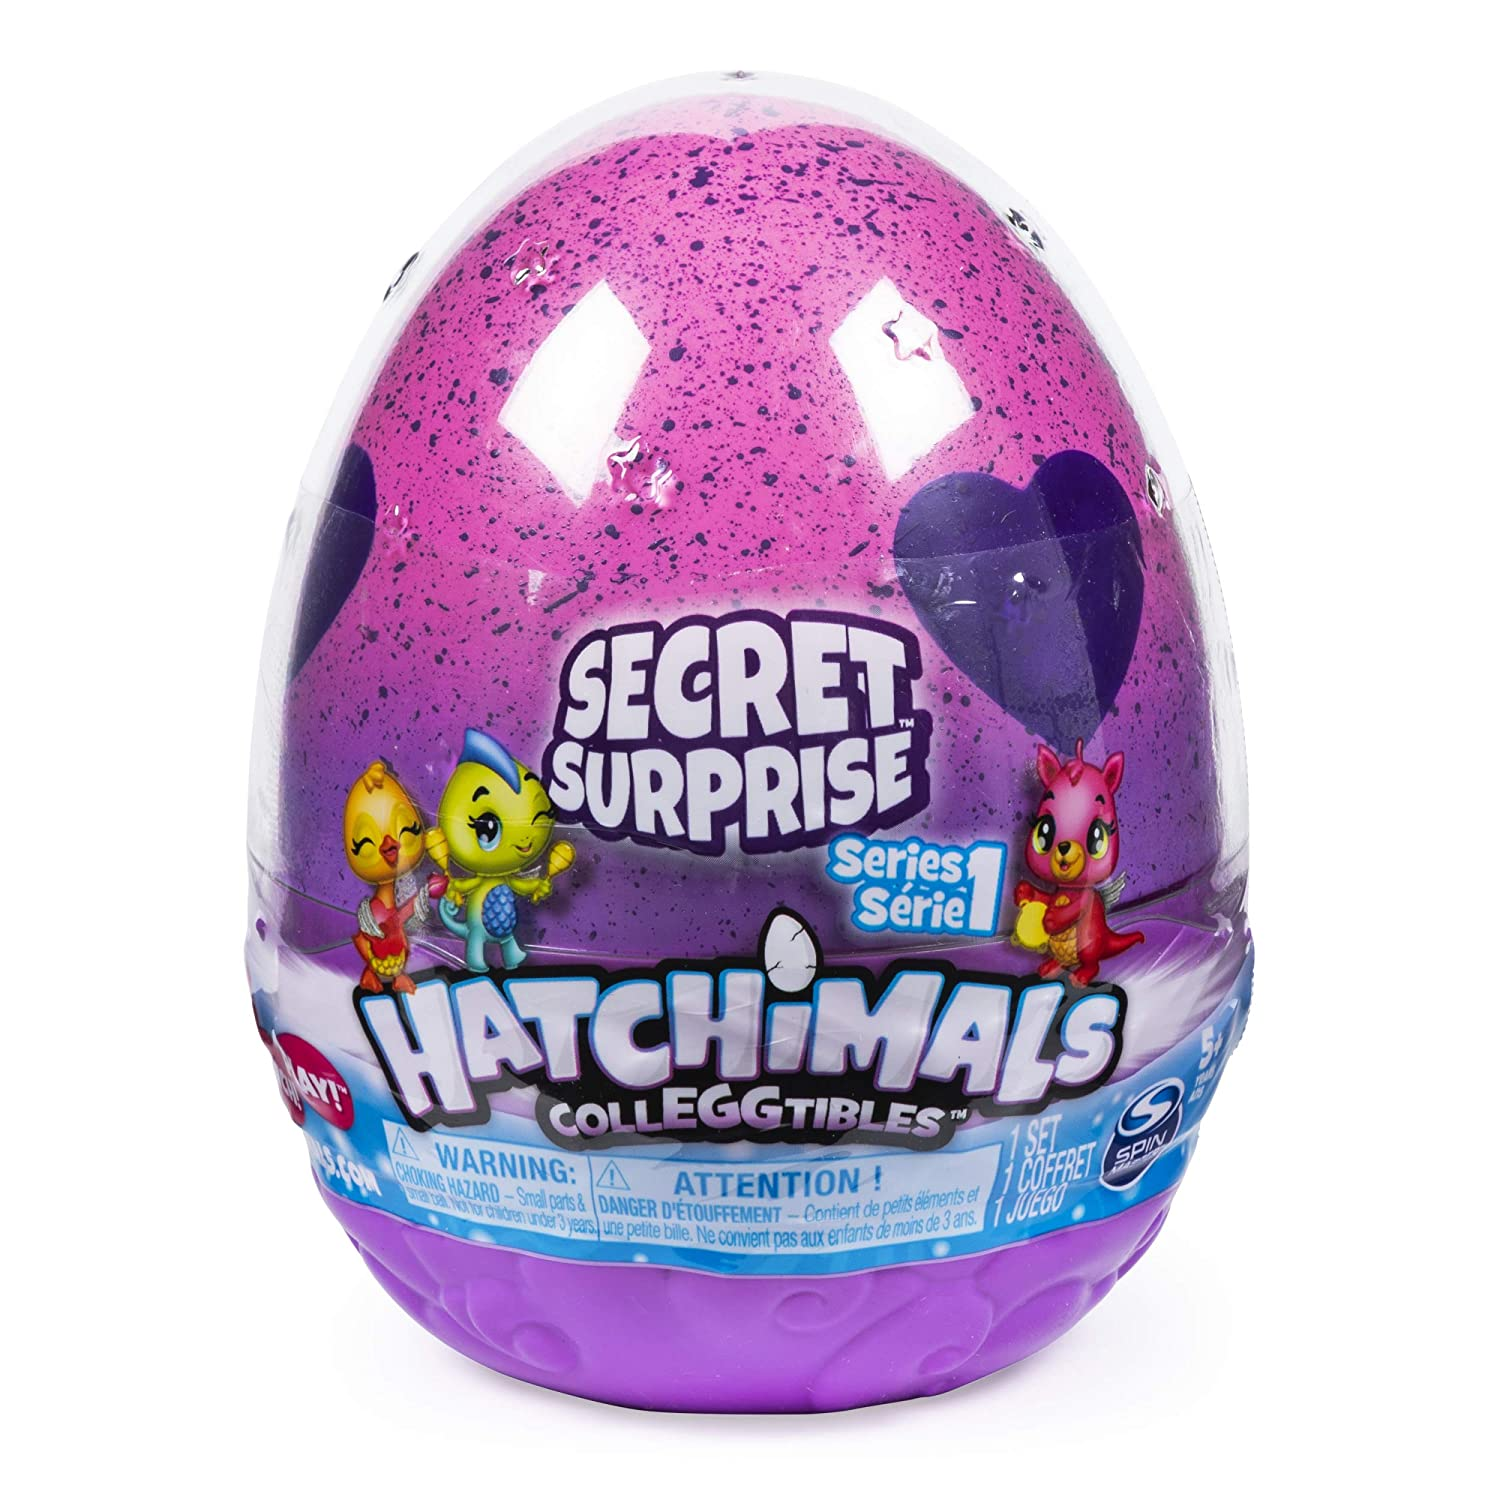 Hatchimals CollEGGtibles, Secret Surprise Playset with 3 (Styles May Vary)